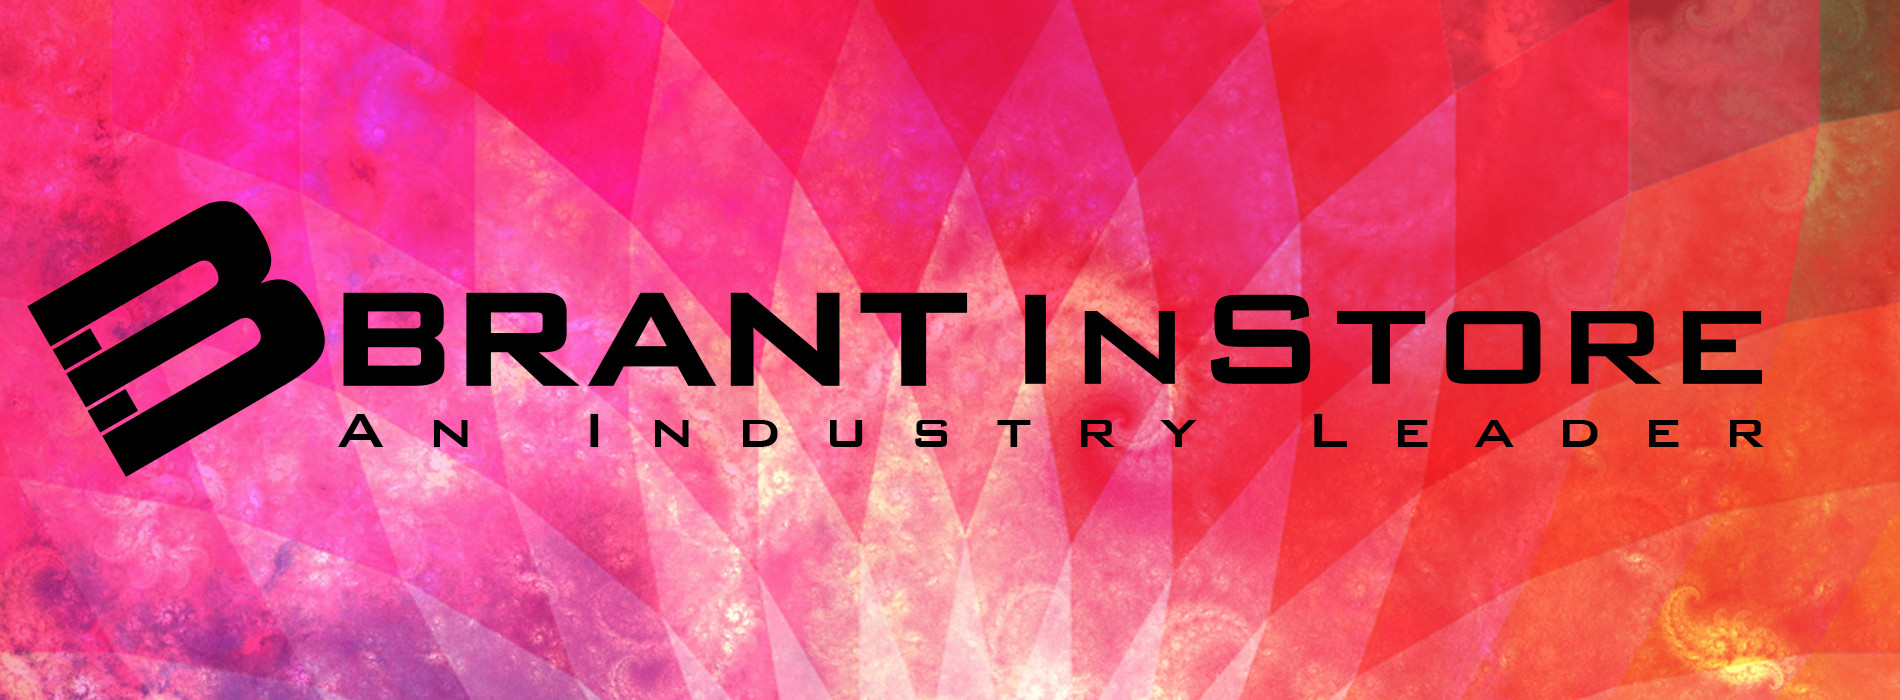 Industry_banner